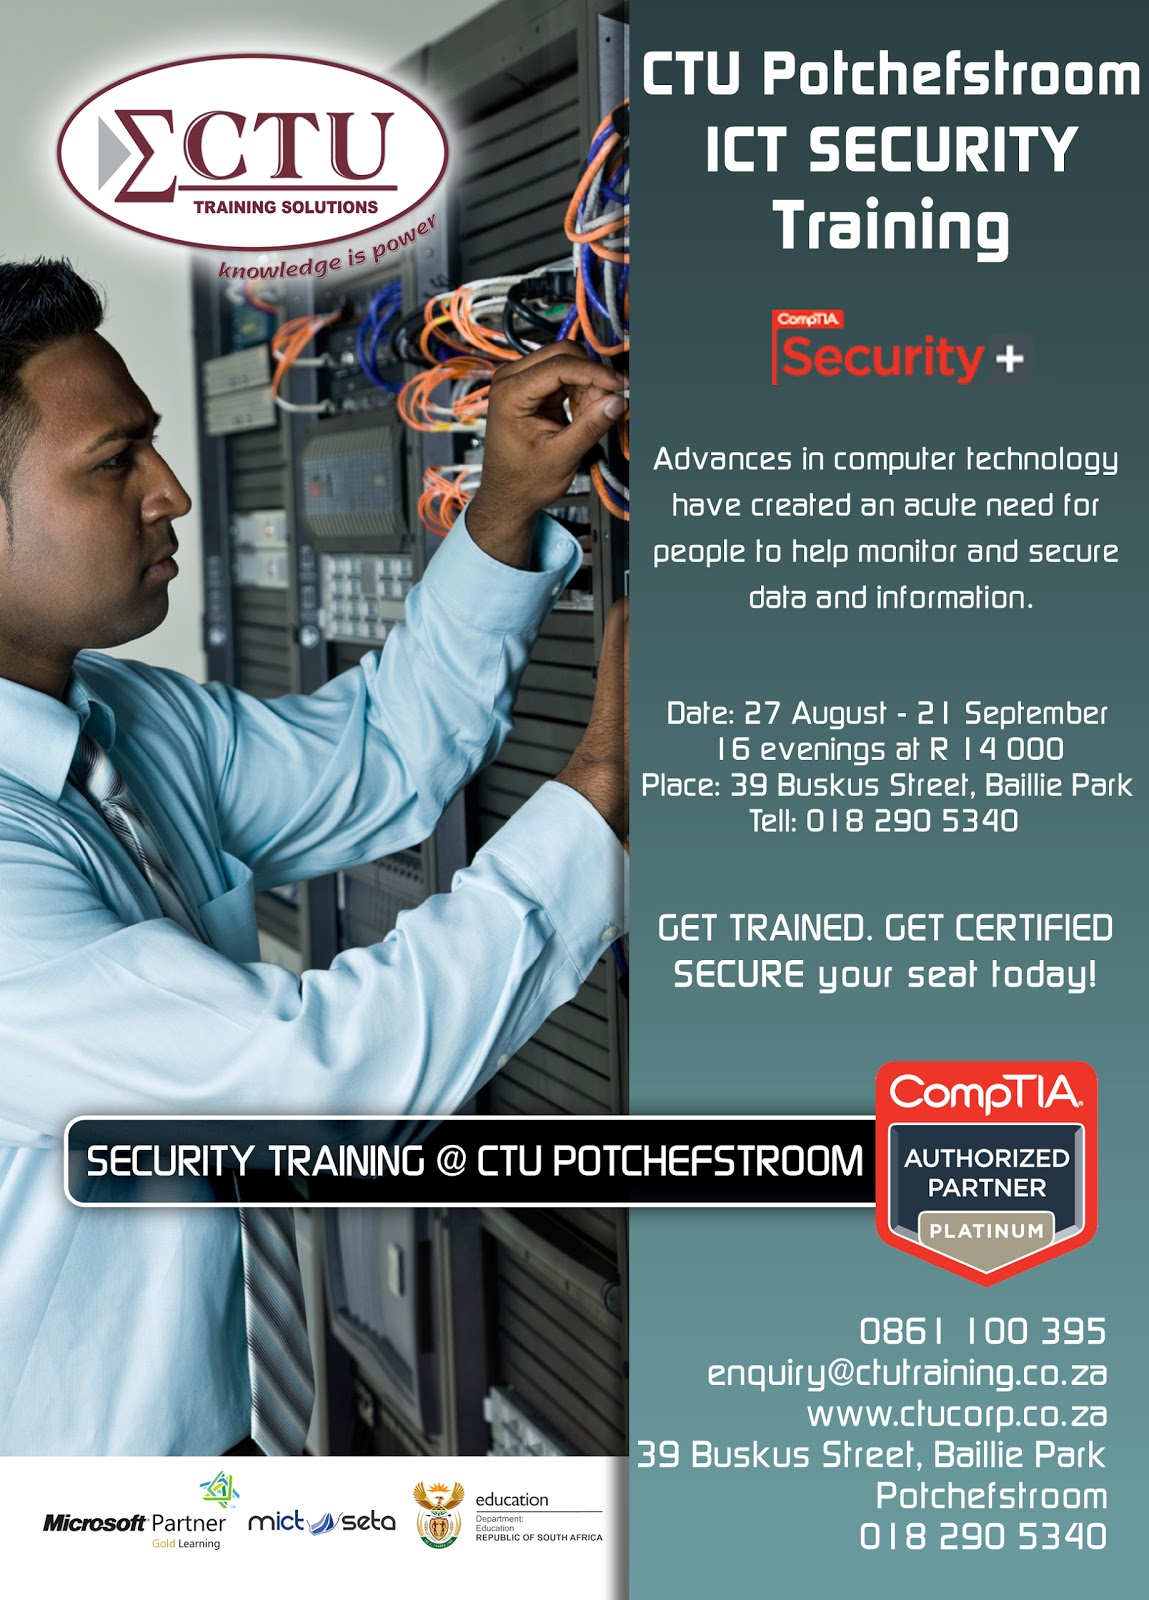 Private Security Qualifications